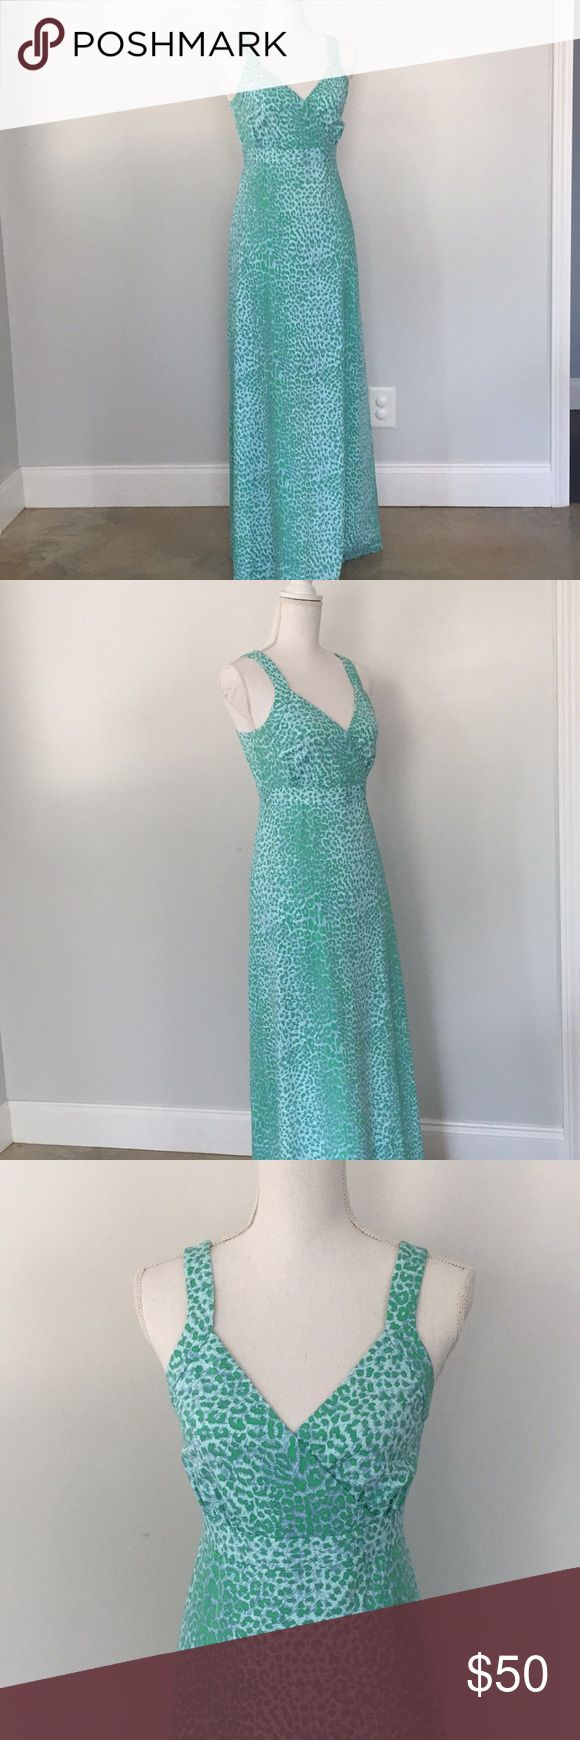 """J. McLaughlin Blue Green Animal Print Maxi Dress J. McLaughlin blue and green Animal Print maxi dress. Size small. In good used condition.   Unlined, Faux wrap, hidden center back zipper.   Measurements Length - 56"""" Chest - 15.5"""" Waist - 14""""  Feel free to ask any questions. No trades, offers welcome. J. McLaughlin Dresses Maxi"""